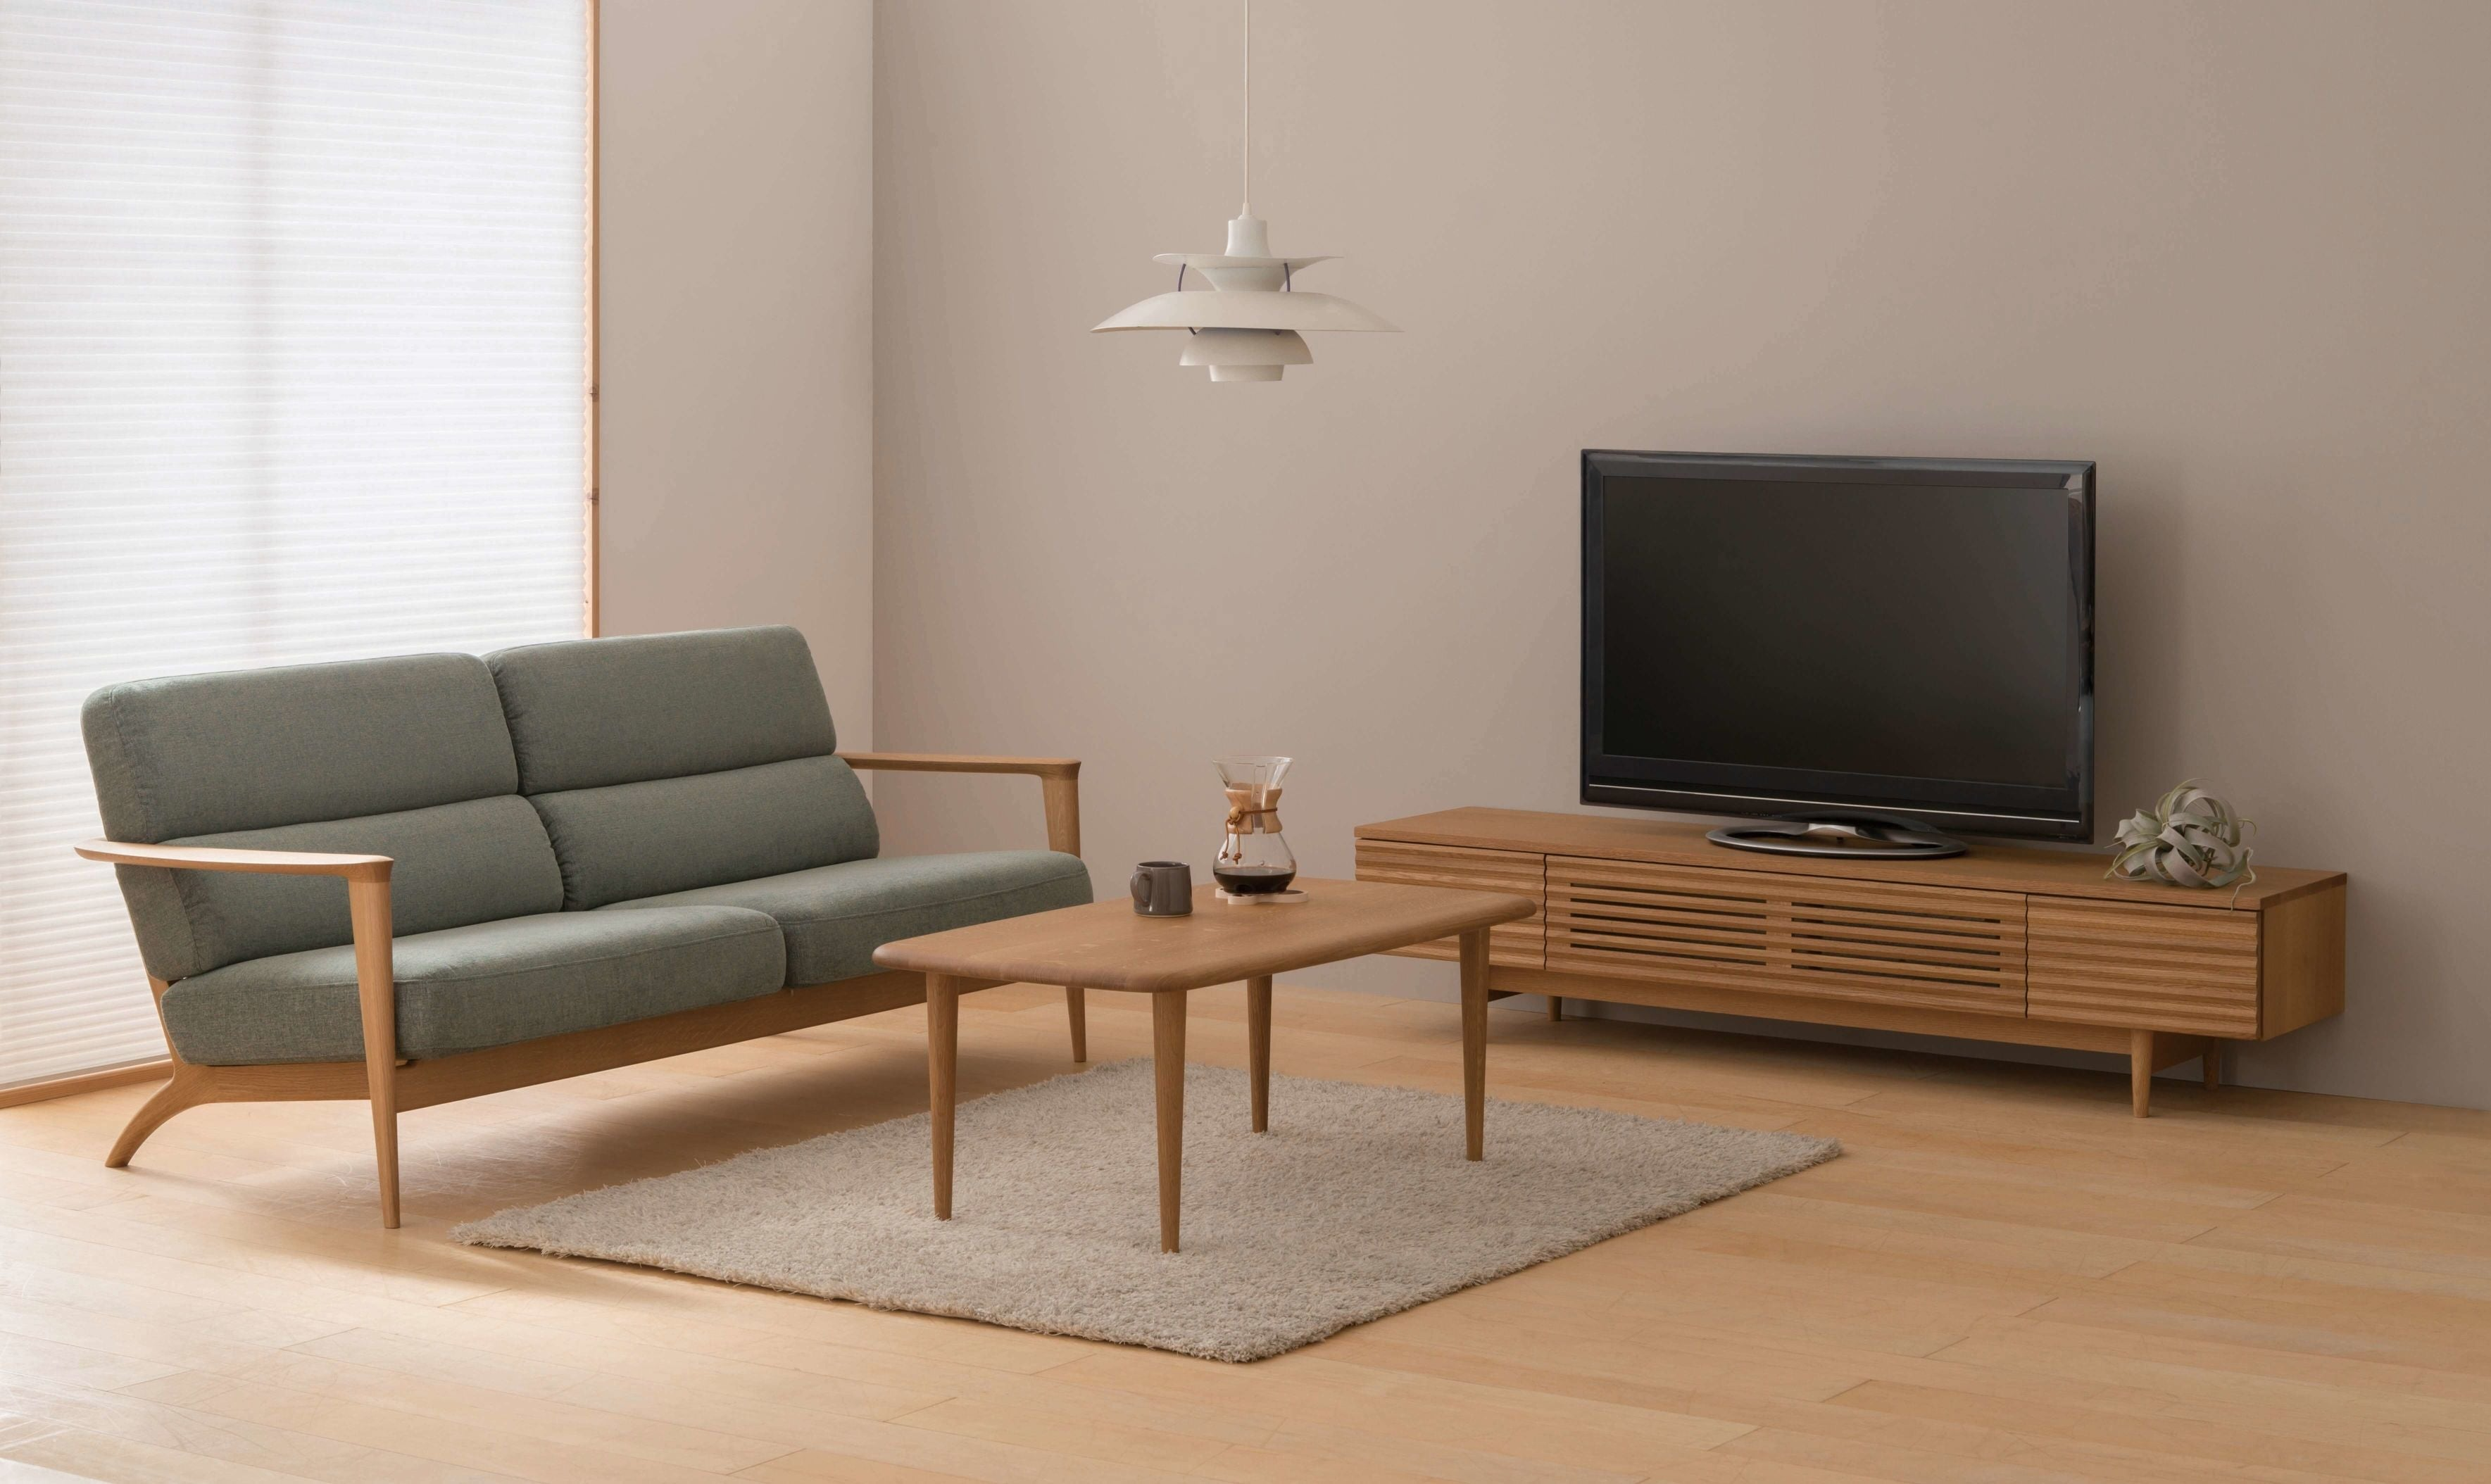 SEOTO High Sofa 3p - Sofa - HIDA